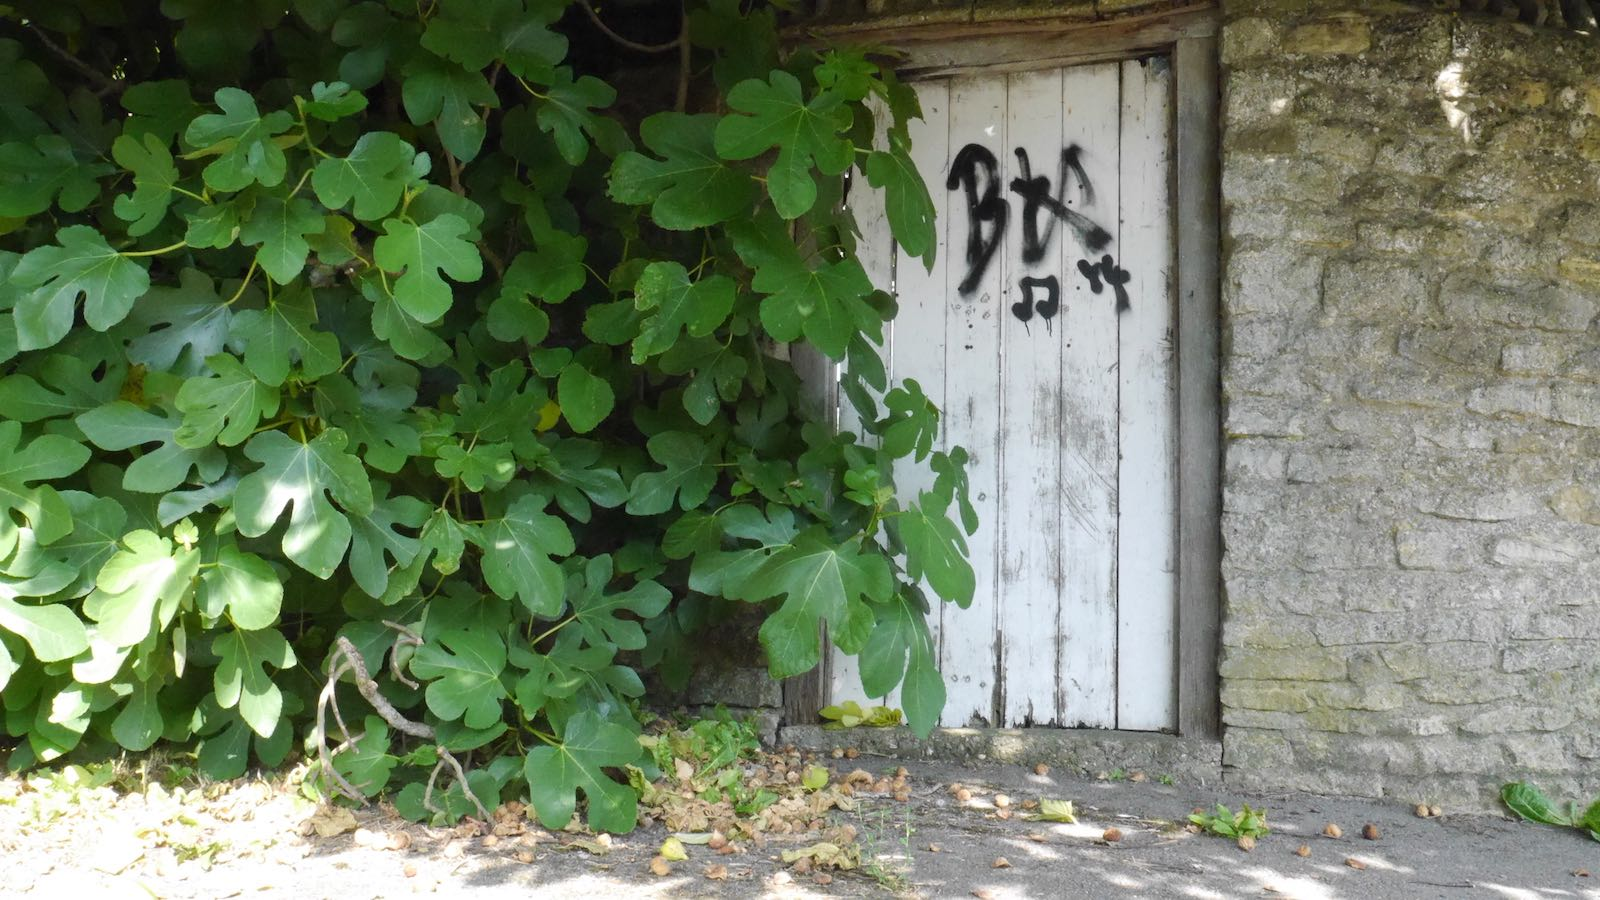 Fig tree overhanging garden wall with white gate that has graffiti on it